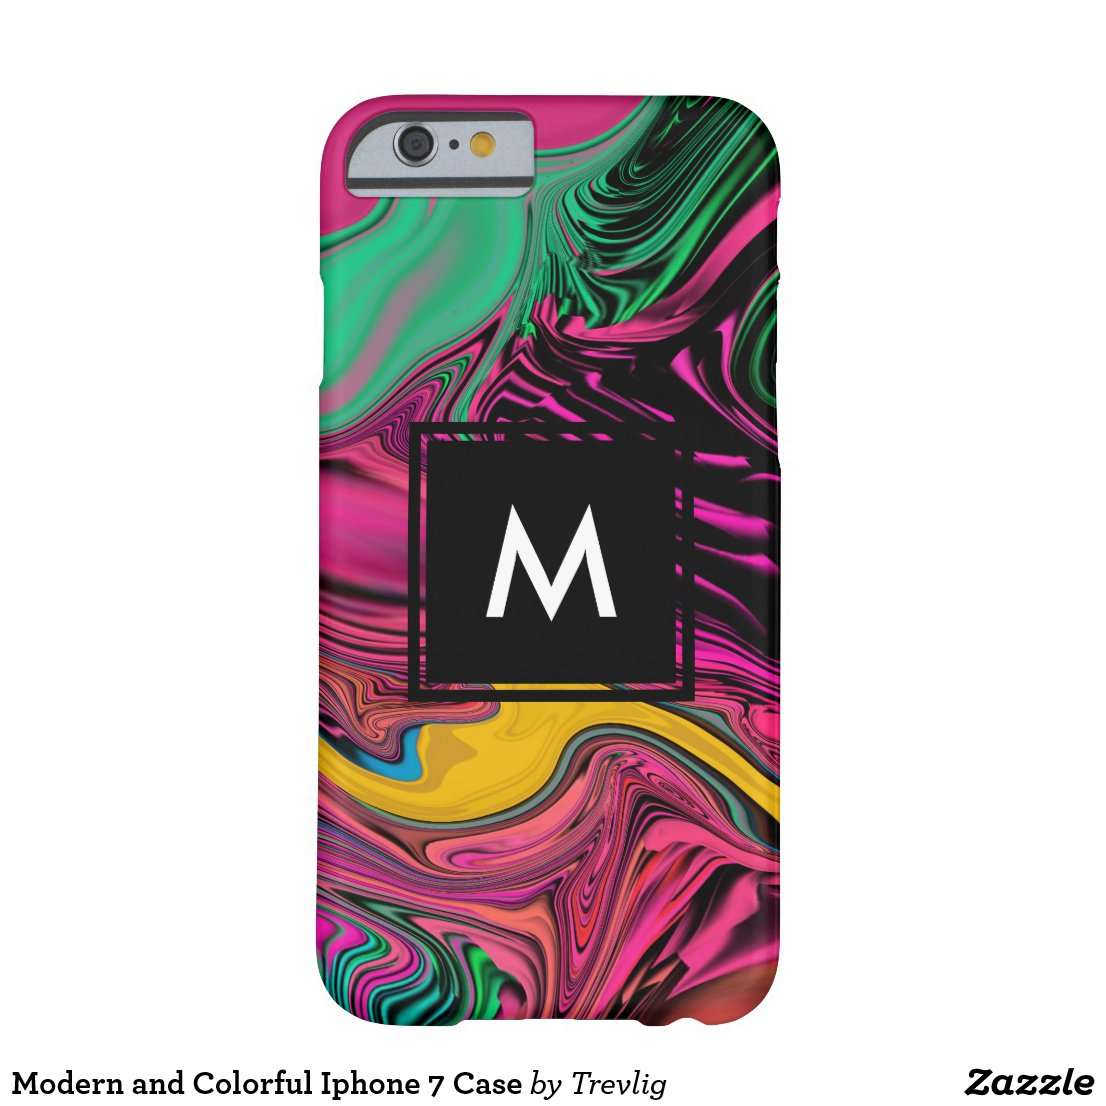 Modern and Colorful Iphone 7 Case